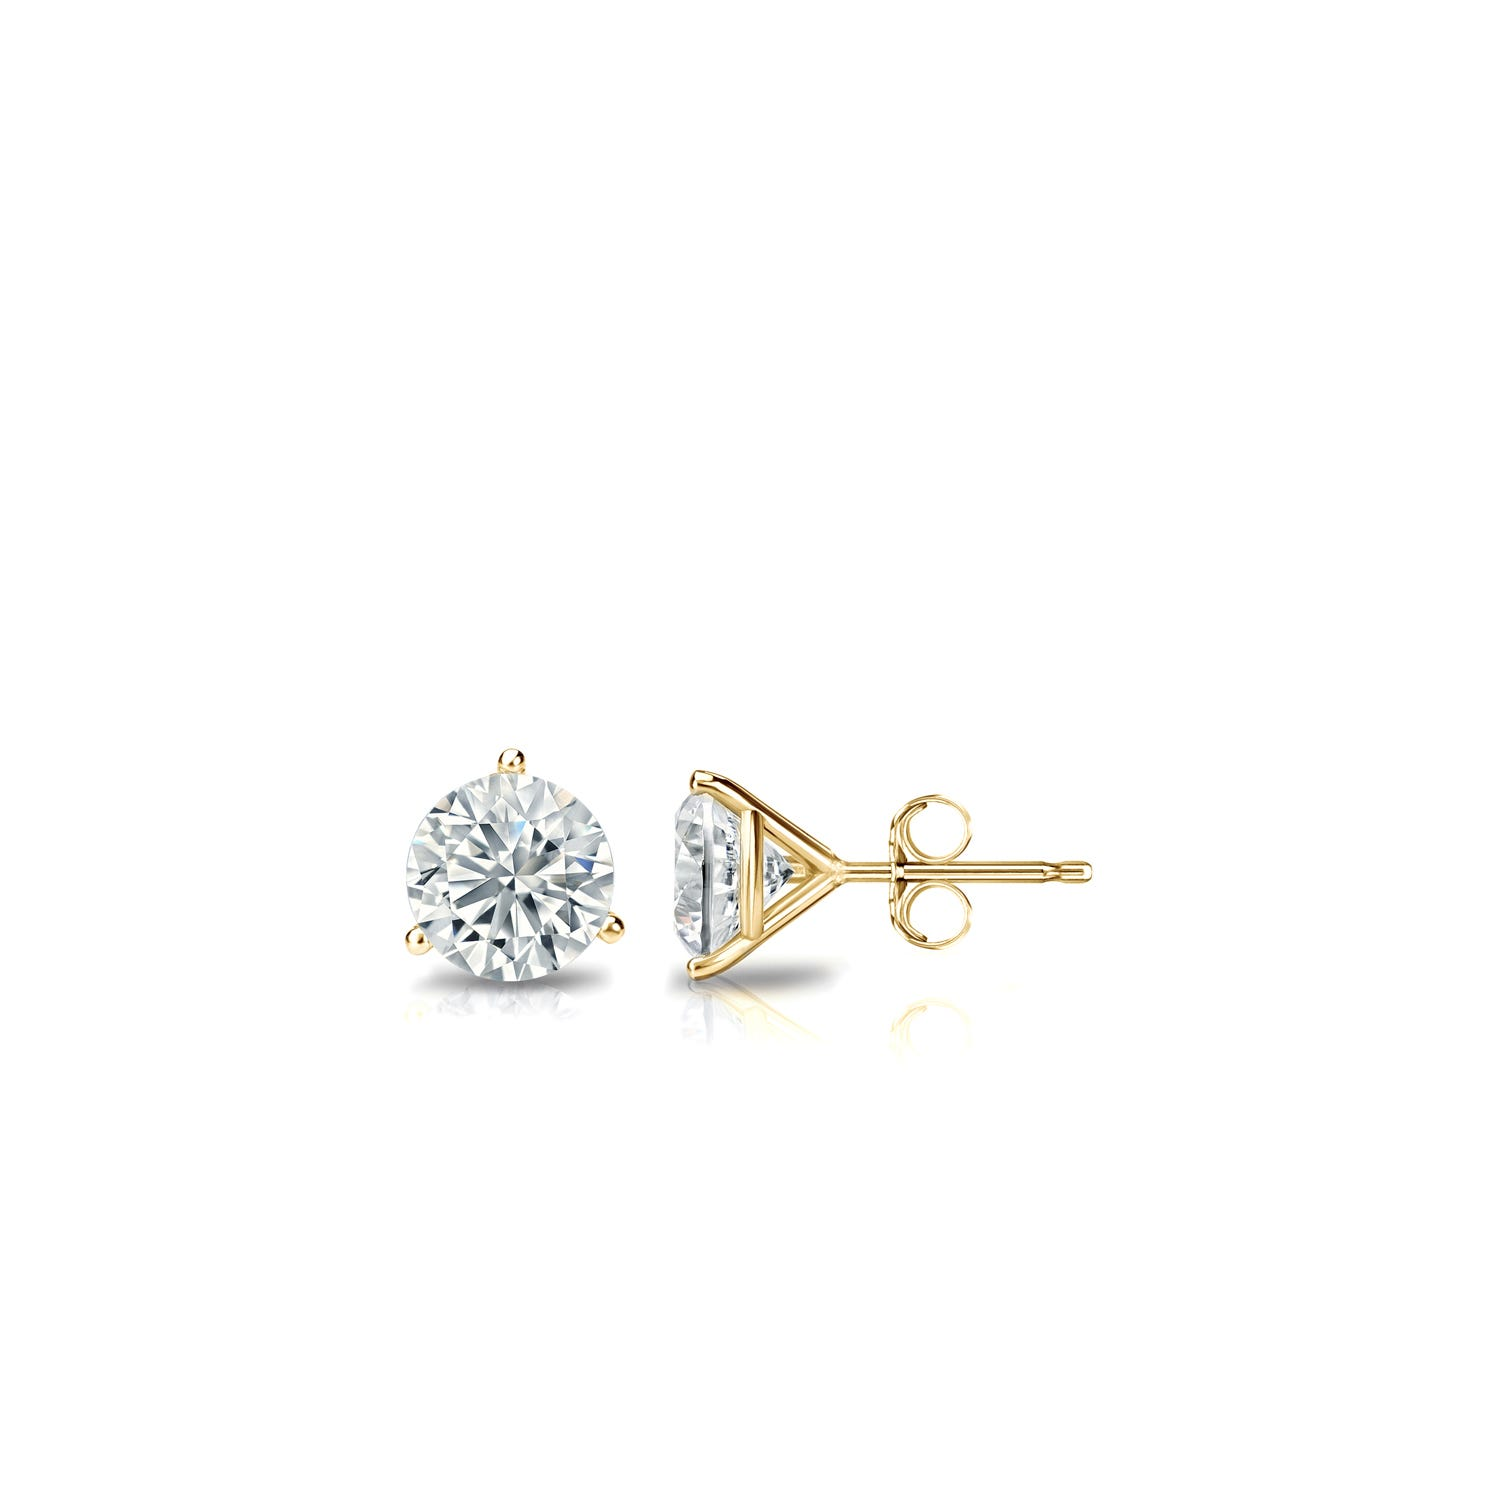 1/6 CTTW Round Diamond Solitaire Stud Earrings IJ SI2 in 14K Yellow Gold 3-Prong Setting